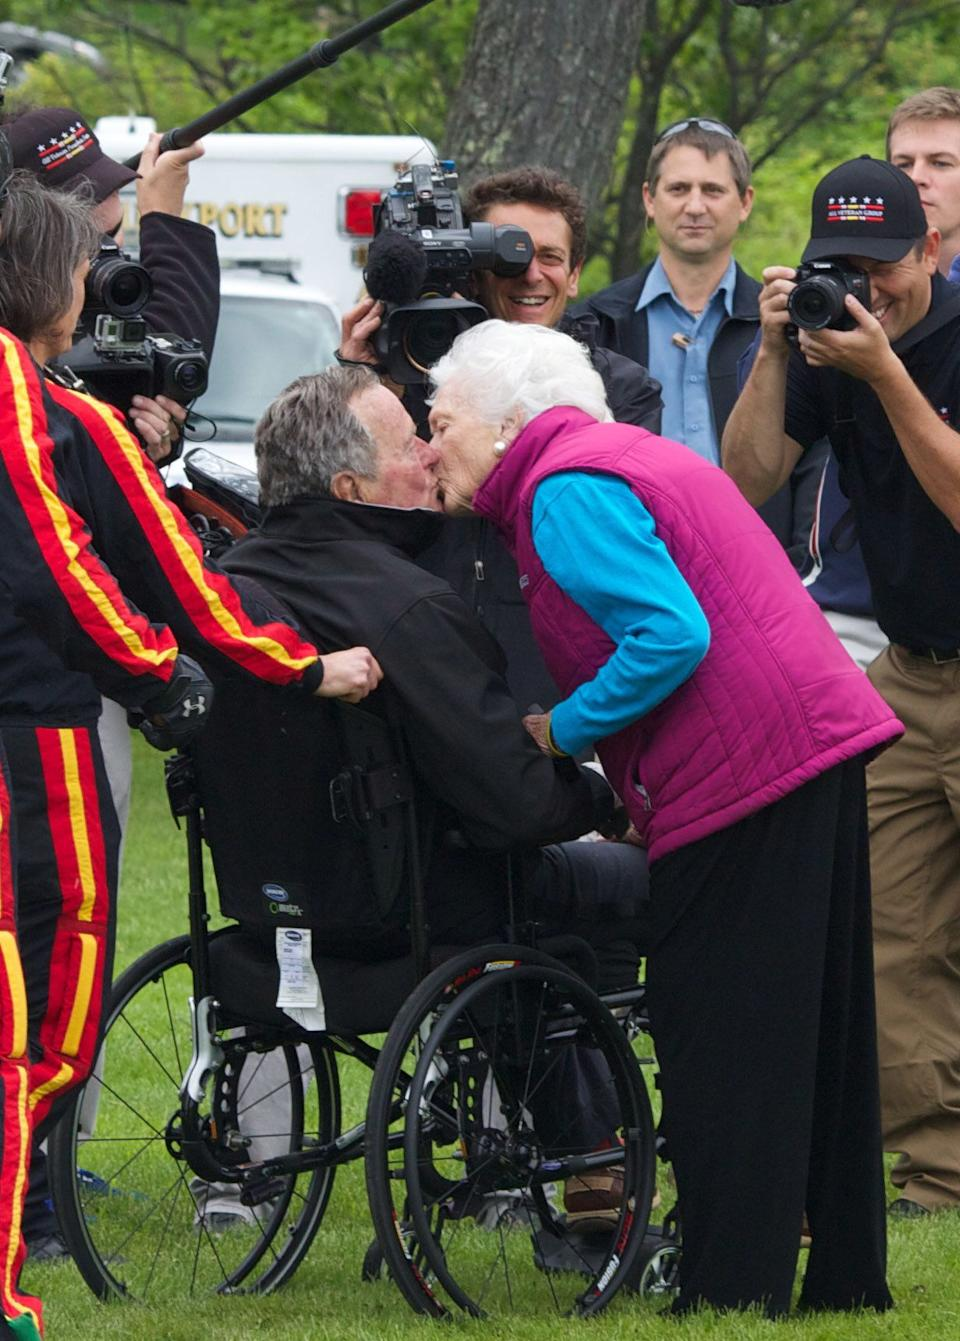 Barbara Bush greets her husband with a kiss after his successful skydive down to St. Anne's Episcopal Church on June 12, 2014, in Kennebunkport, Maine.